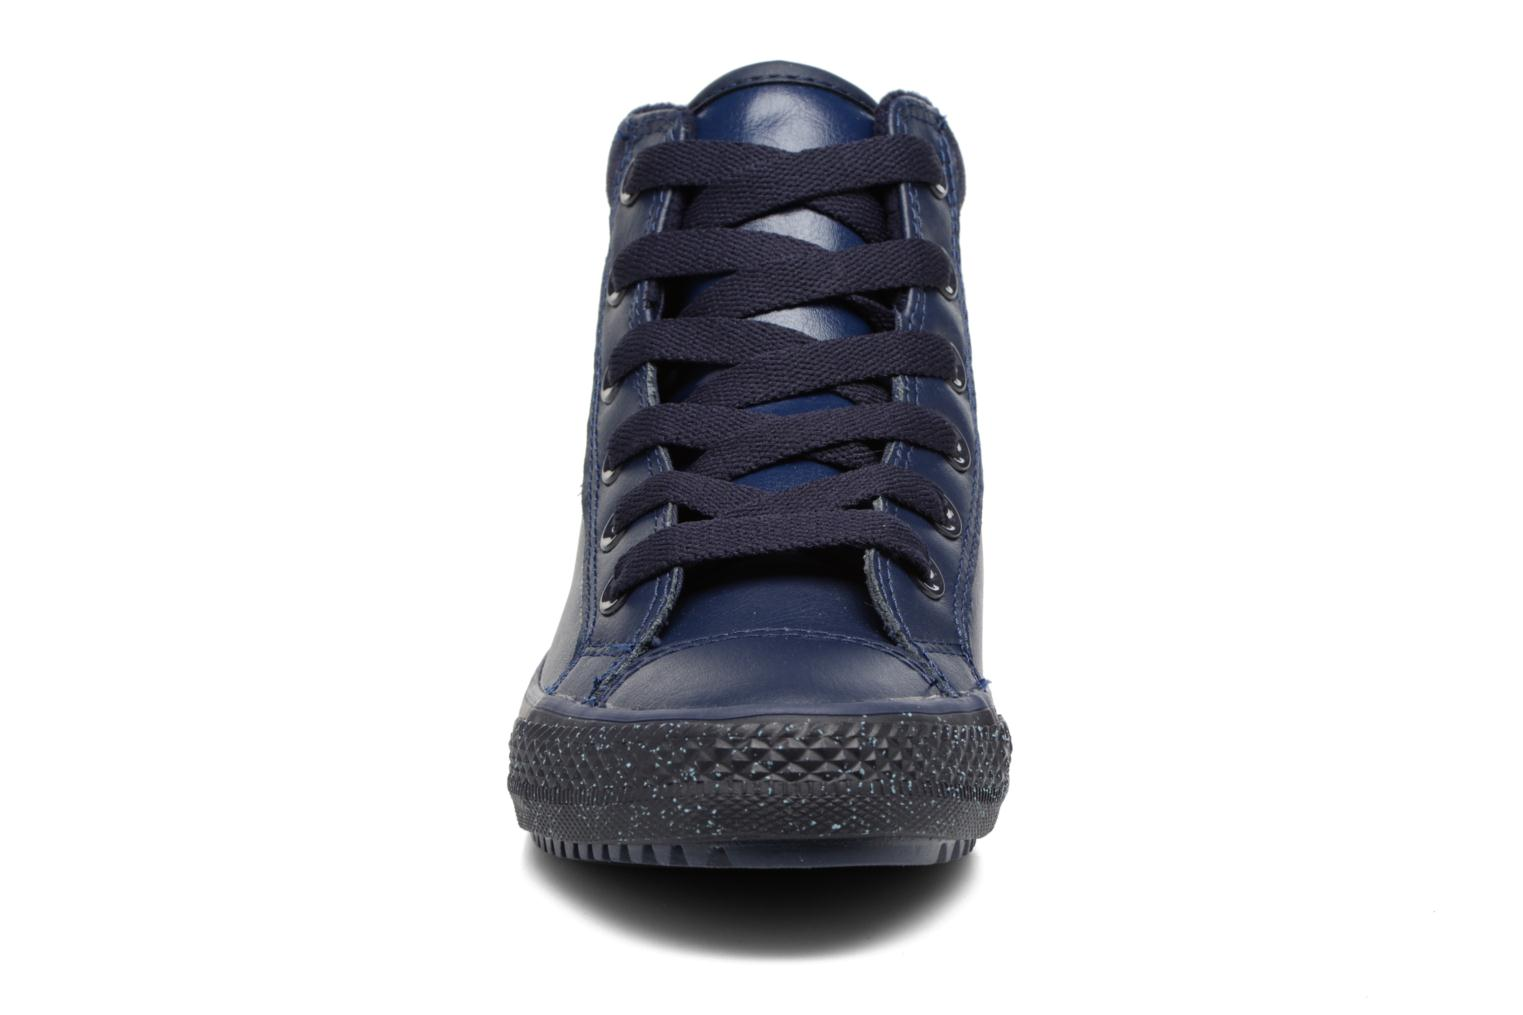 Chuck Taylor All Star Converse Boot PC Leather Hi Midnight Navy/Inked/Black